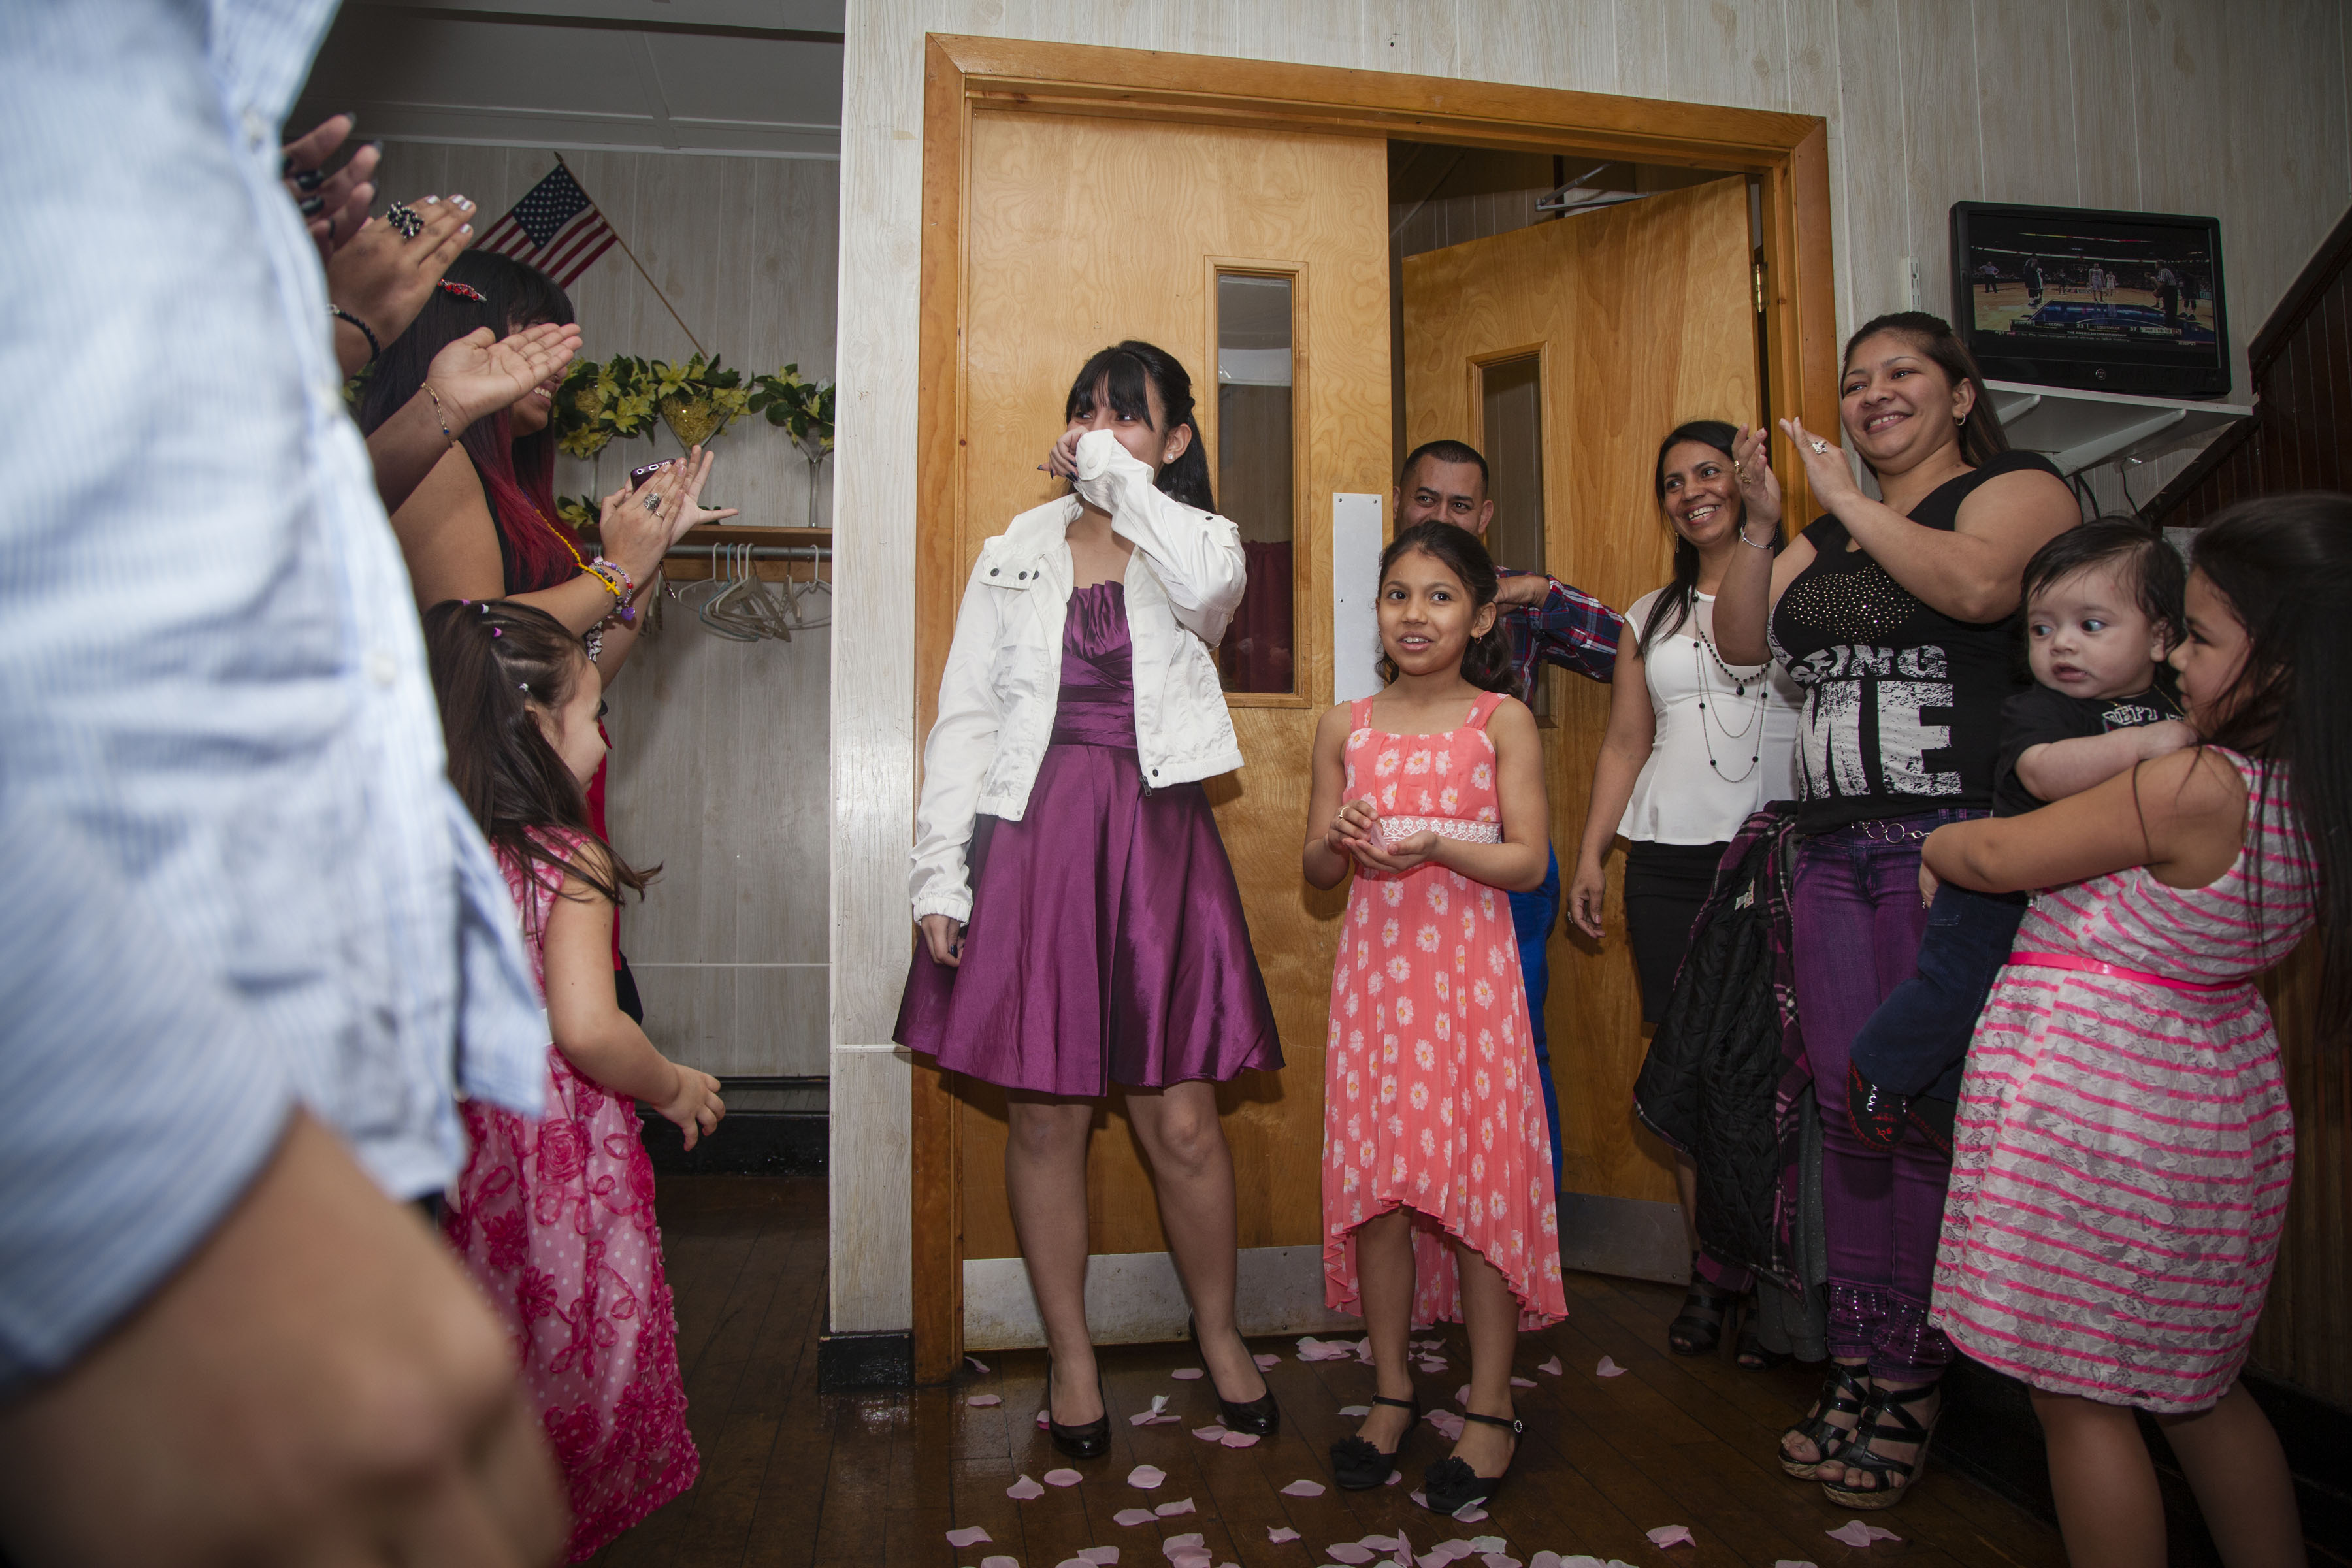 """A friend of the family, Sandy Maldonado, celebrates her 14th birthday. In this countr,y we can have a big celebration at 14 just because we want to, but the real birthday party is supposed to be at 15 for whats called a """"quinceanera,"""" the year that marks a girl's passage to womanhood. I remember when my mom once told me that, for her quinceanera, her mom pulled all of her savings to just afford a dress at the local street market. (Photo by Iaritza Menjivar/GroundTruth)"""